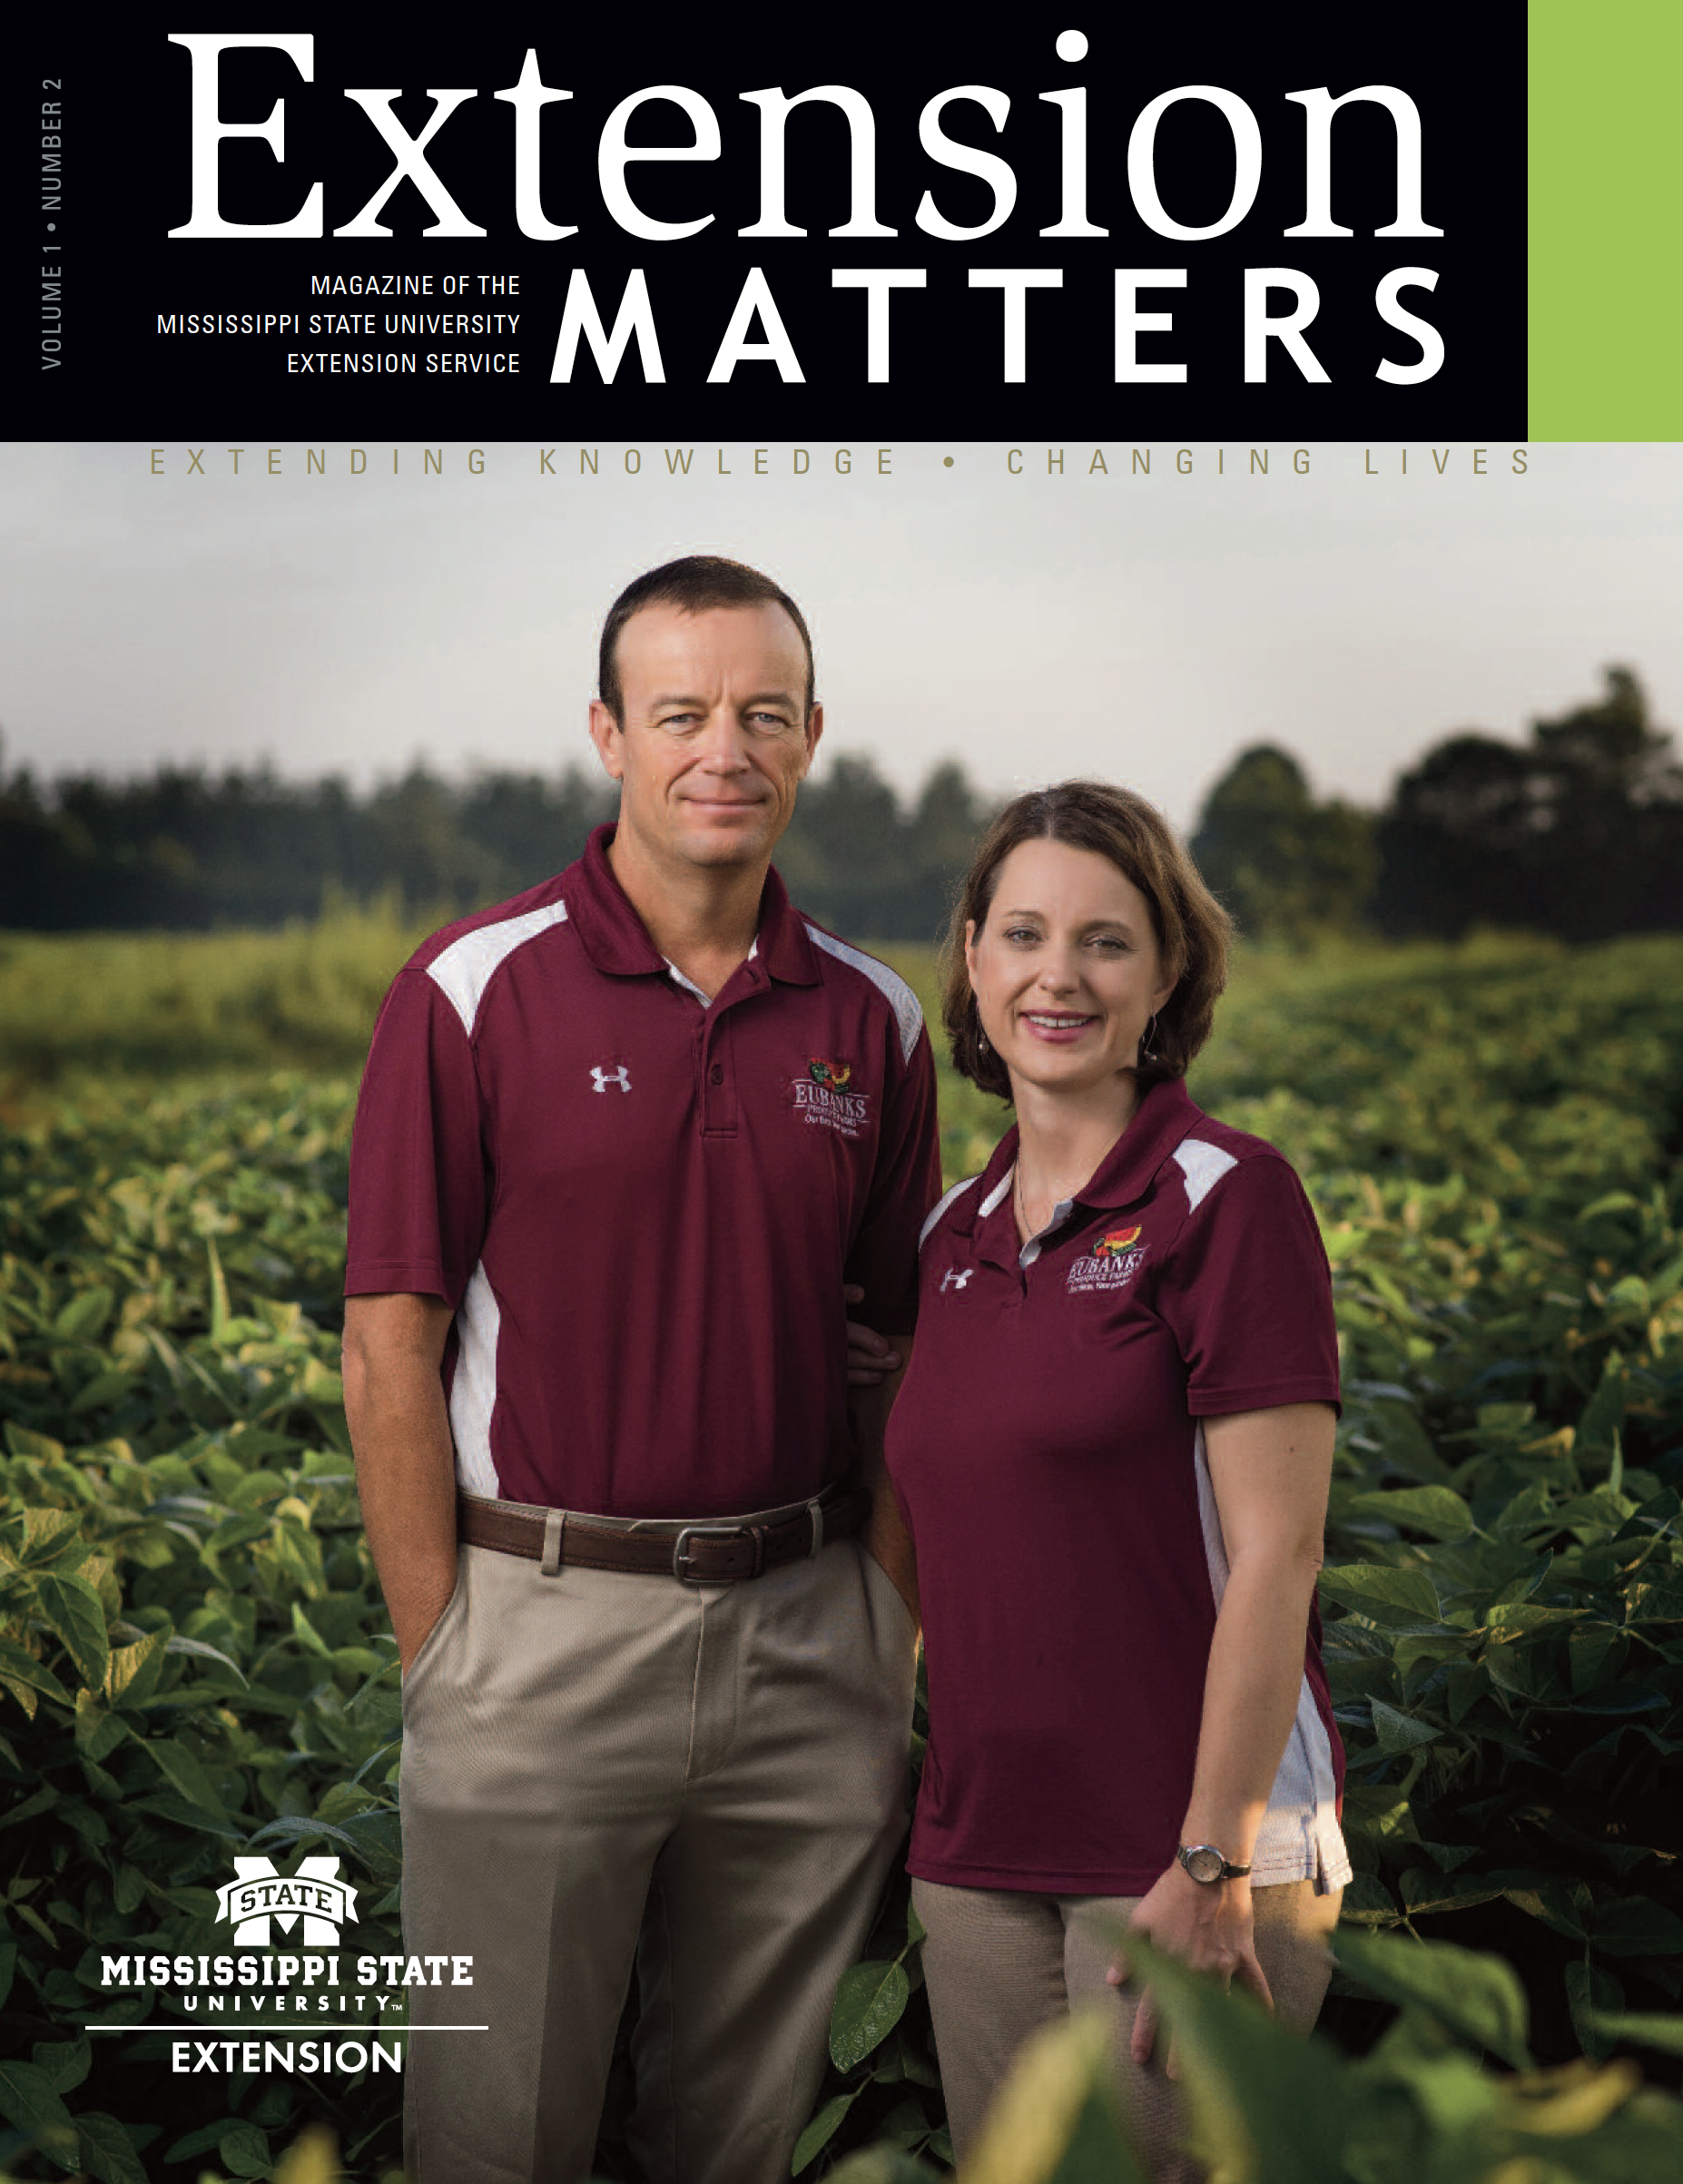 Extension Matters Volume 1 Number 2.